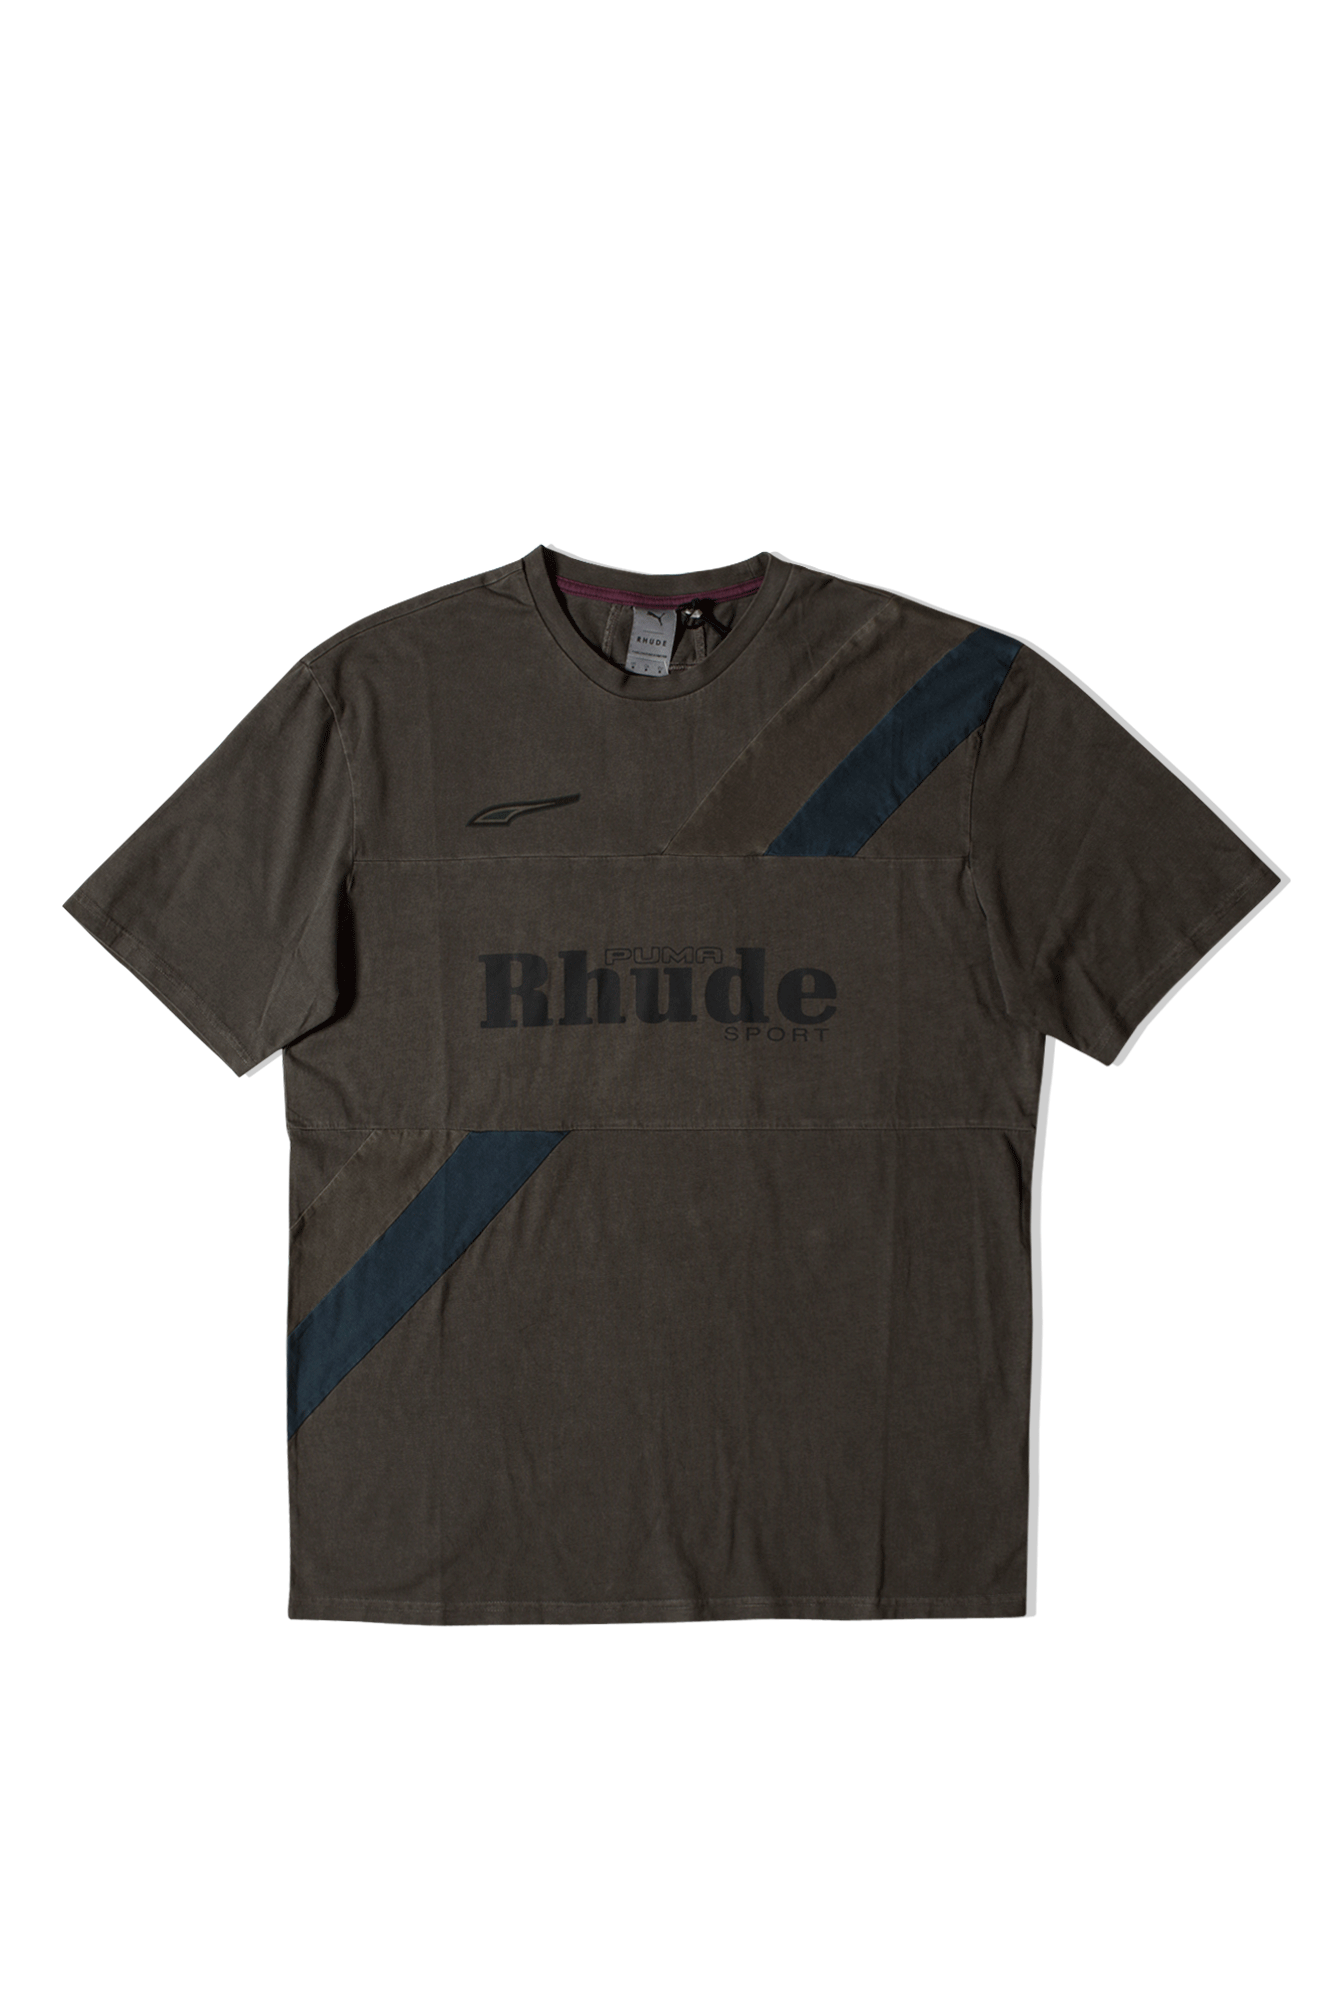 T-Shirt x Rhude Black